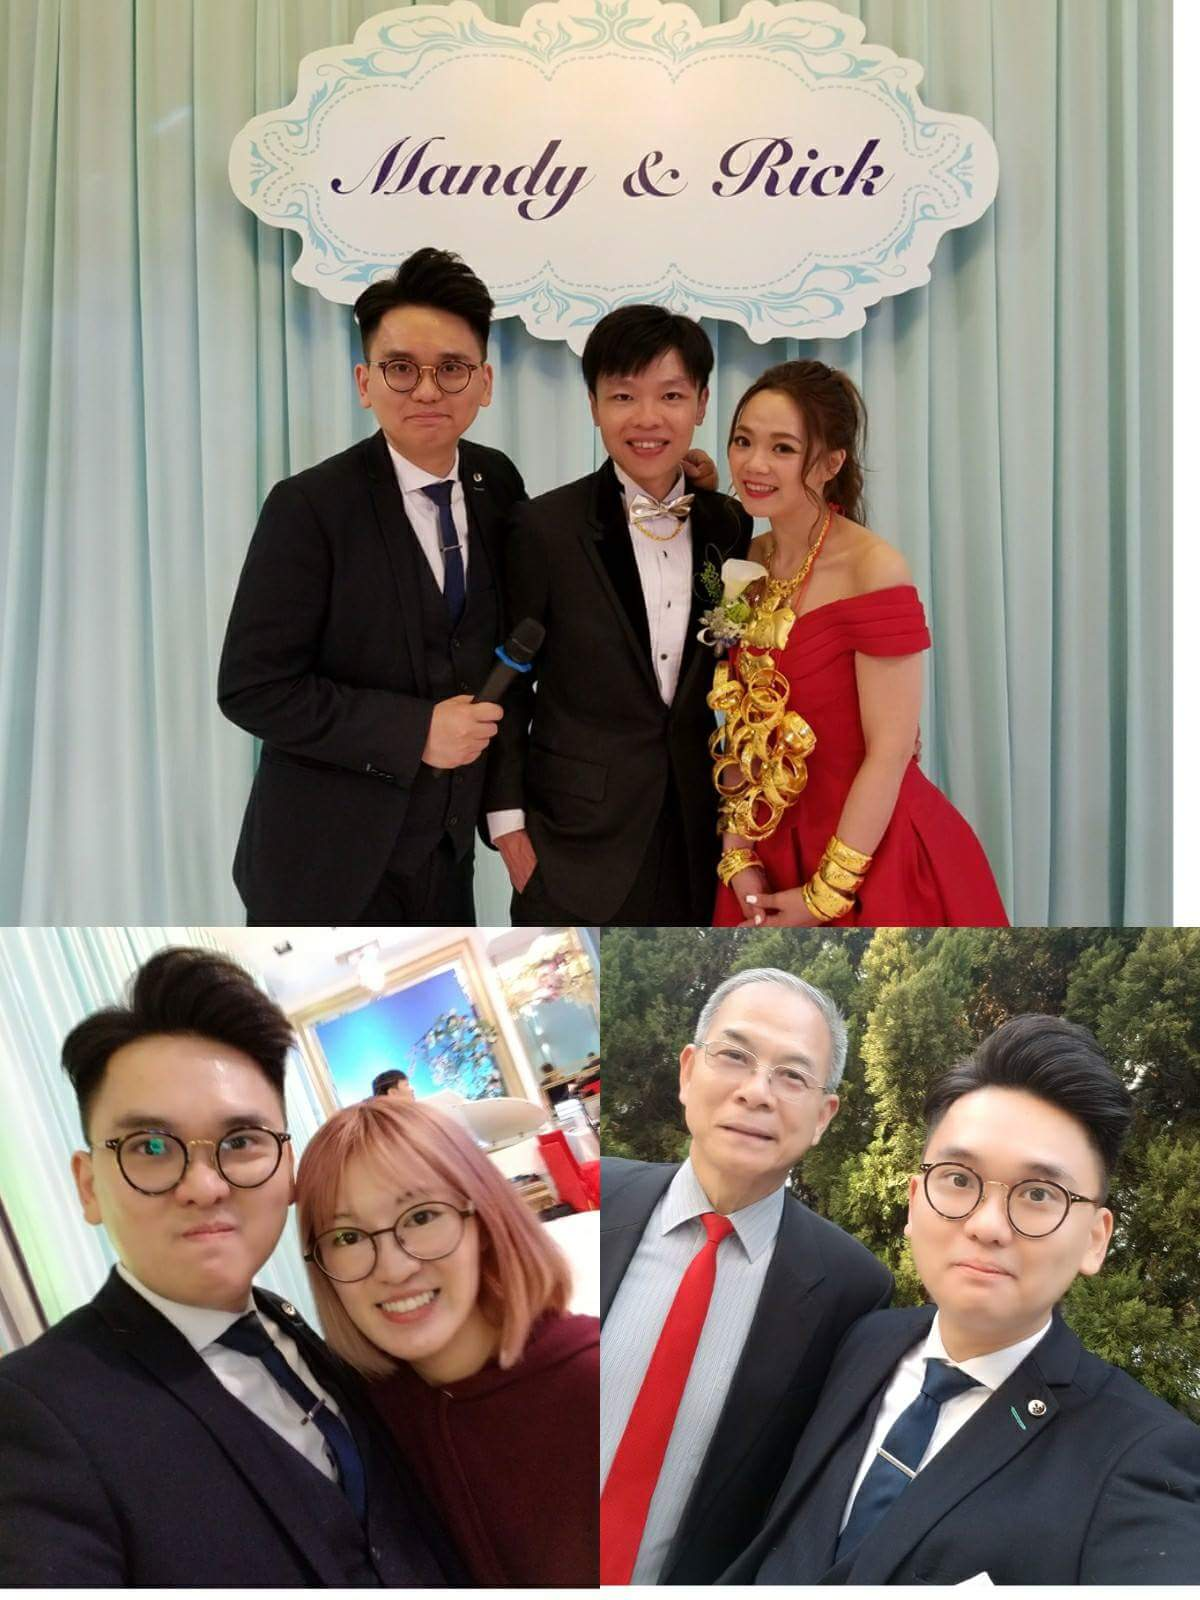 司儀婚禮司儀 Mc Leo ho工作紀錄: 「婚禮司儀」、「婚宴司儀」Wedding MC Outjob (MC Leo) (10, Apr 2018 @K11 ClubONE Sky Garden )